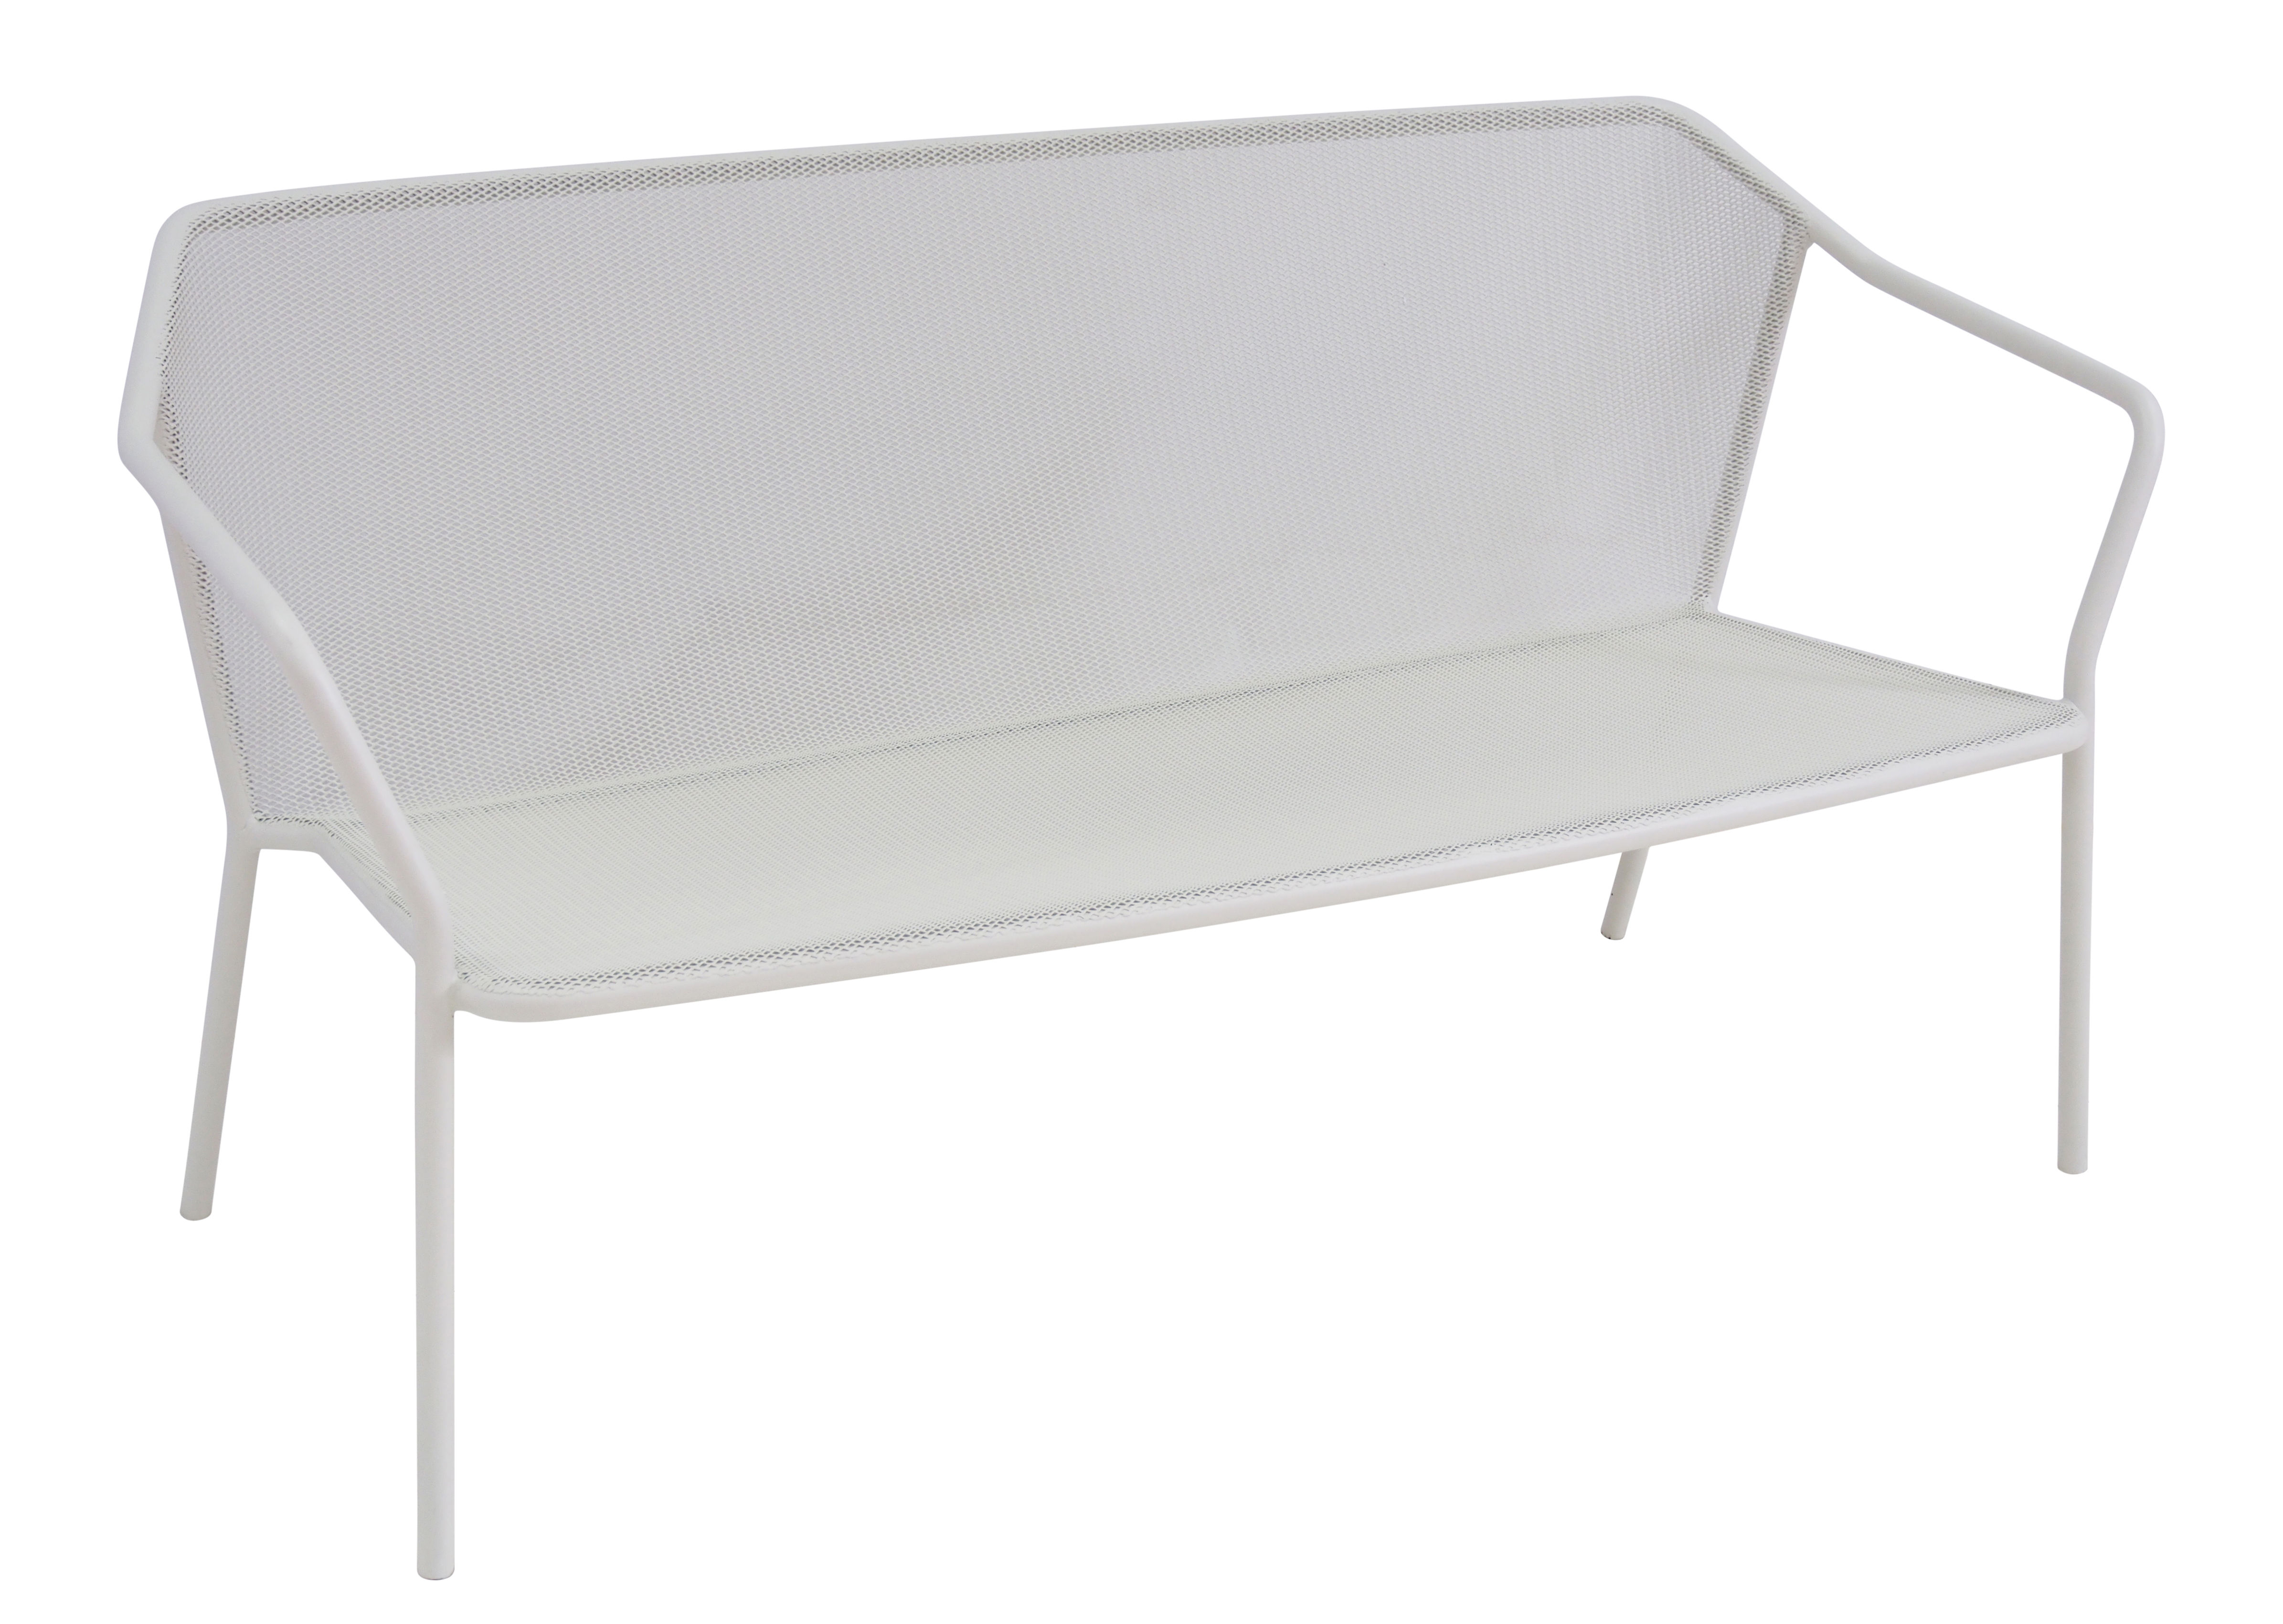 Darwin bench metal l 140 cm matt white by emu made